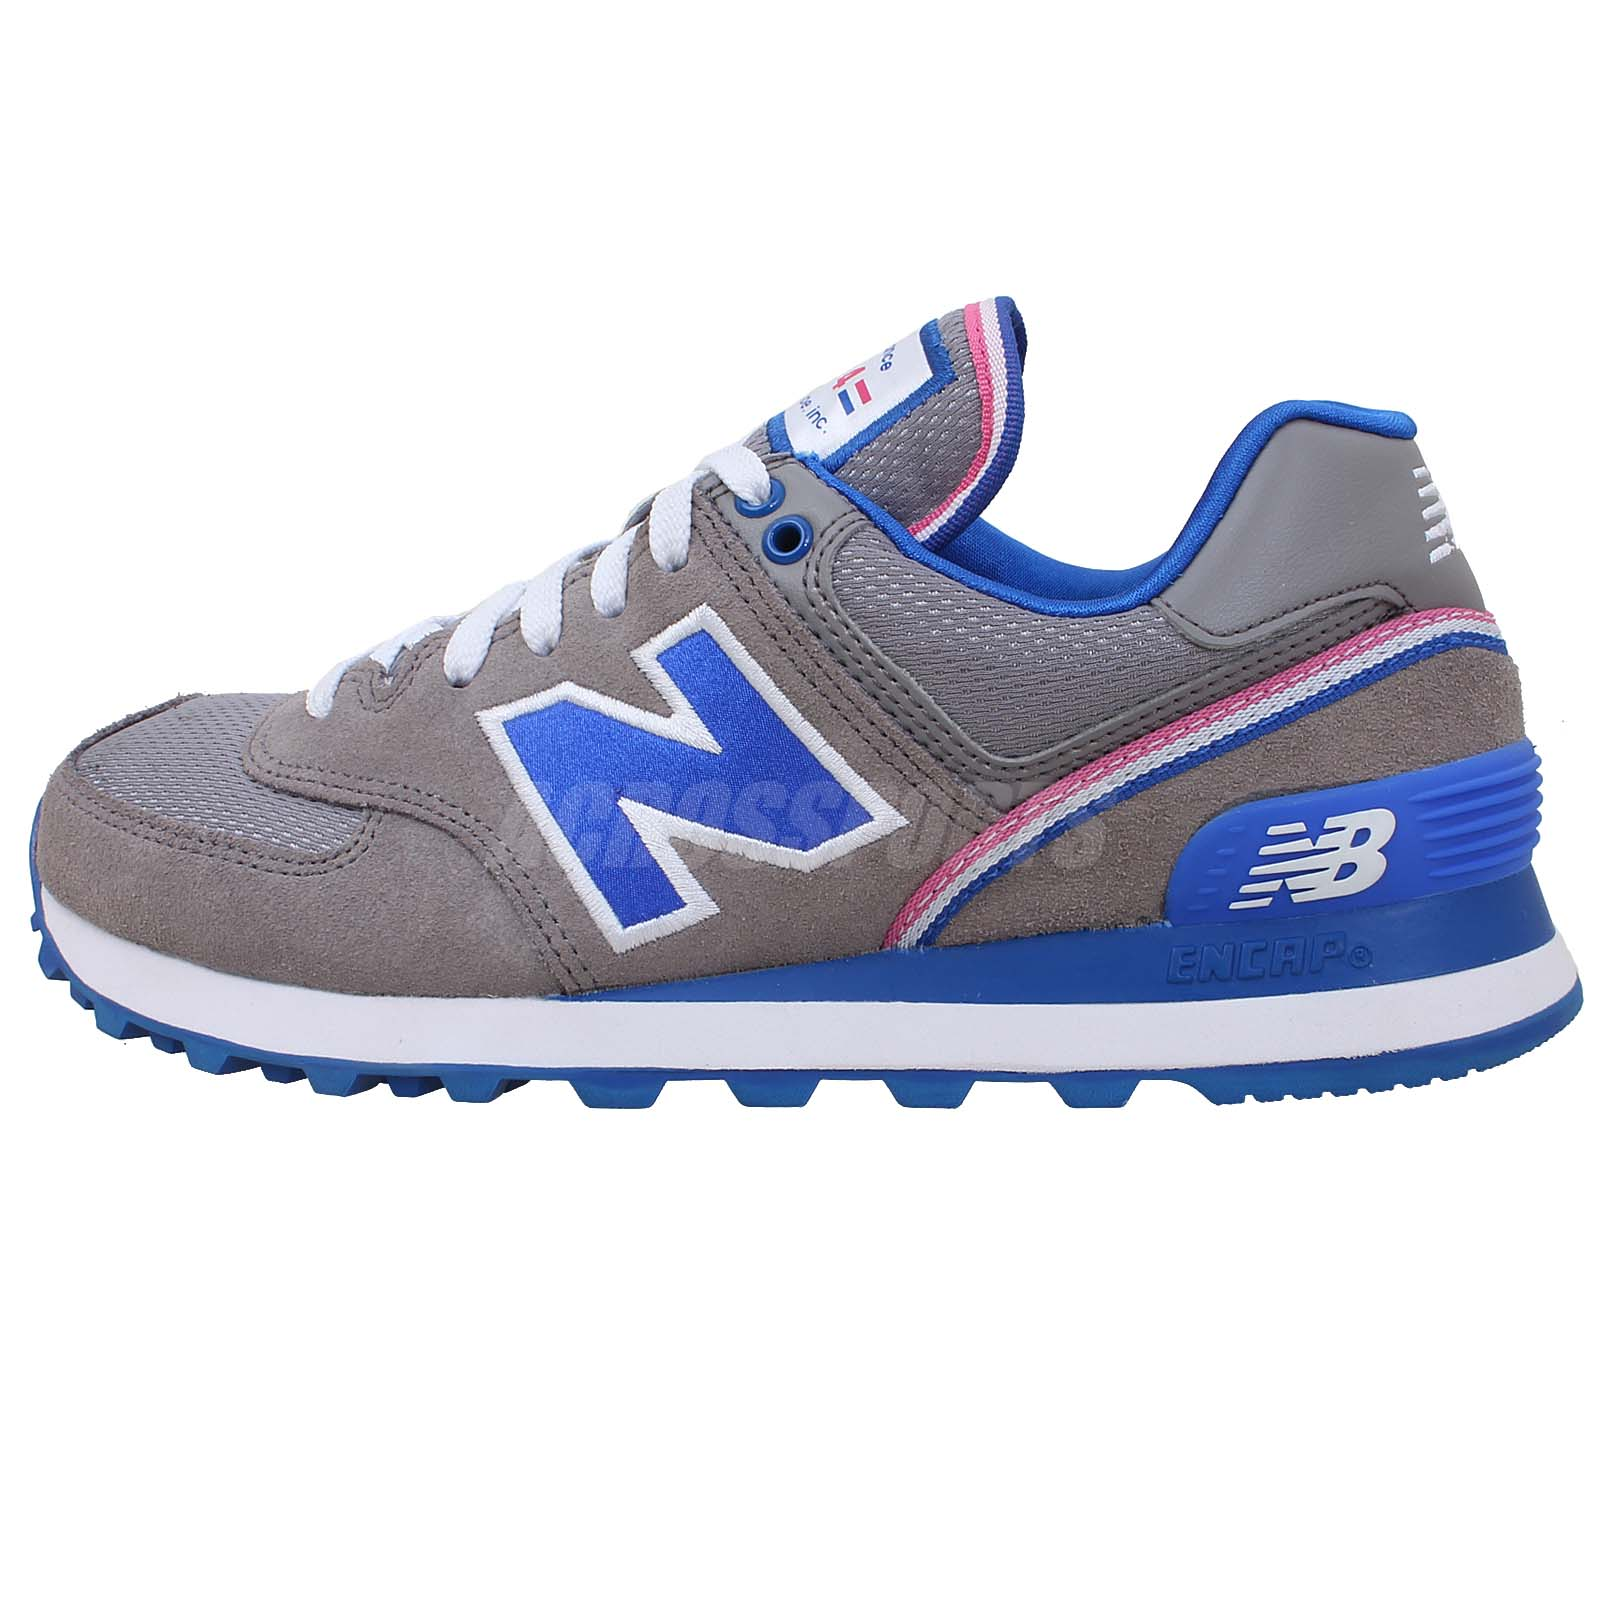 new balance wl574sjg b grey blue 2014 womens cute retro running shoes 574 ebay. Black Bedroom Furniture Sets. Home Design Ideas